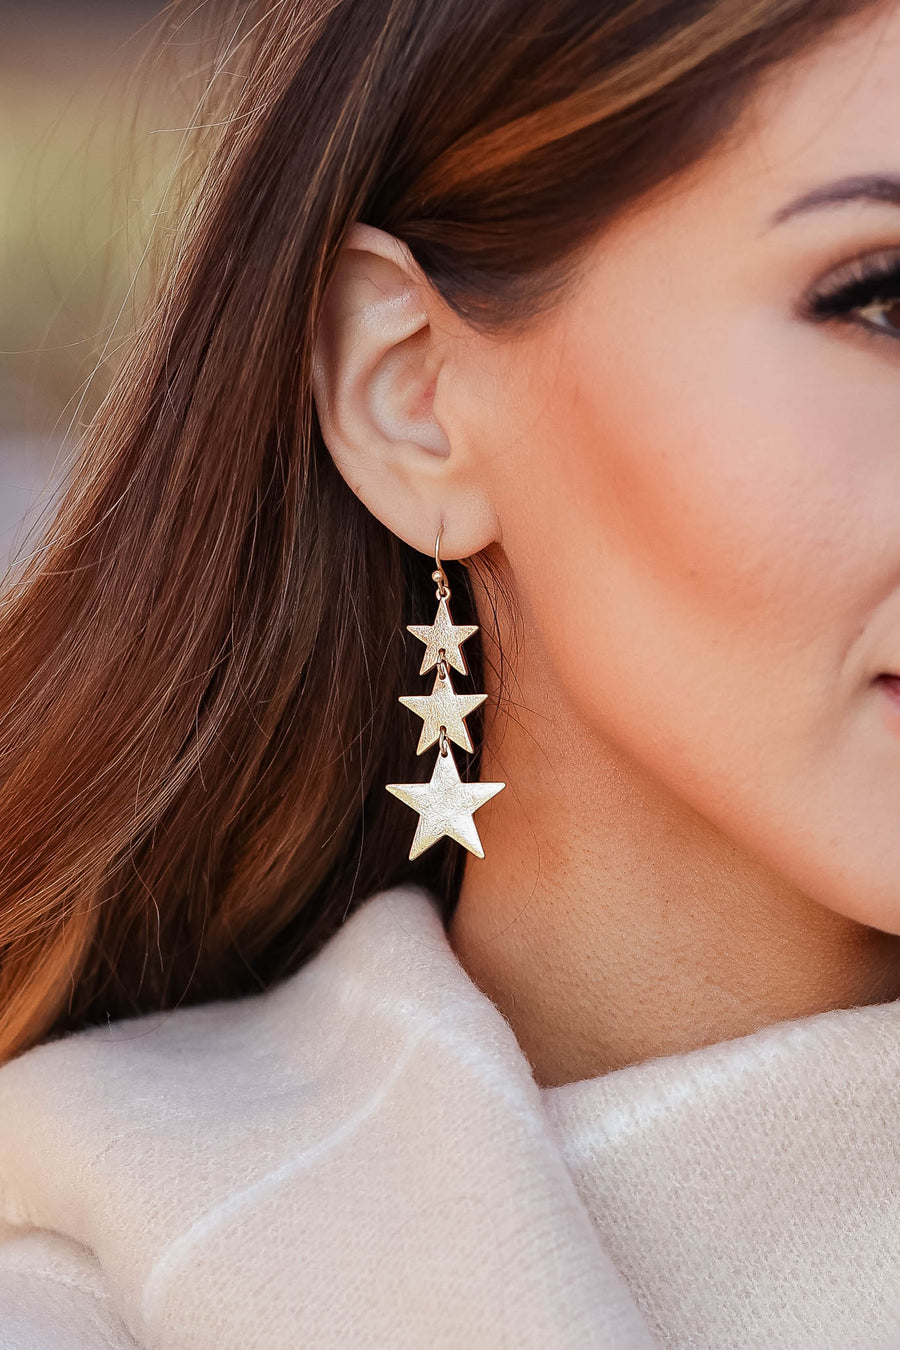 All Night Star Earrings - Vintage Gold womens trendy star dangle earrings closet candy front